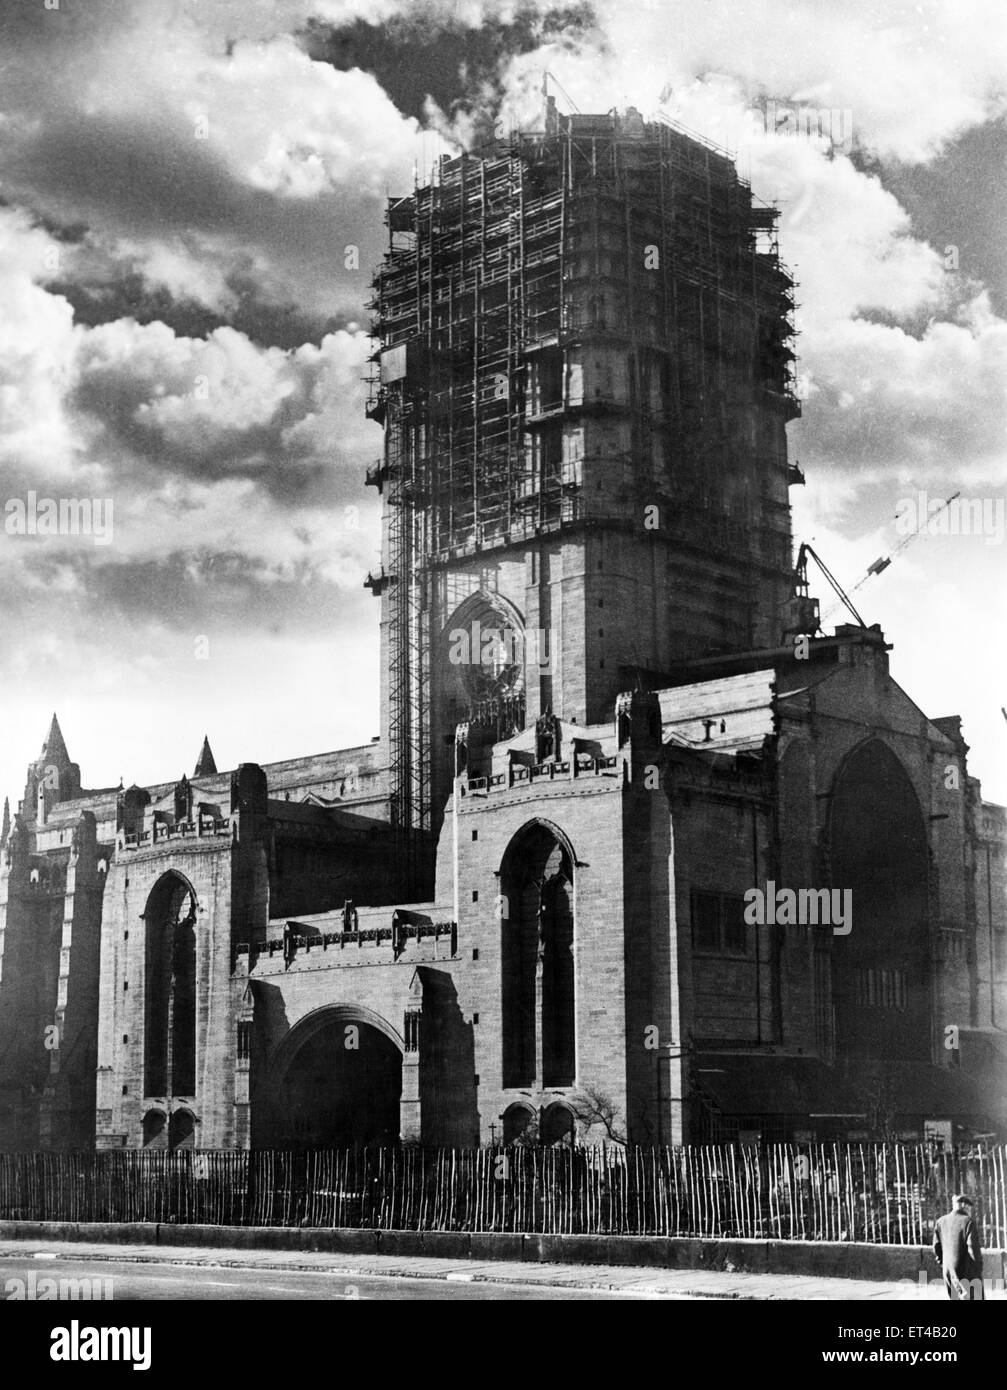 The completed portion of the main building of the Liverpool Anglican Cathedral, with the Vestry Tower also approaching - Stock Image